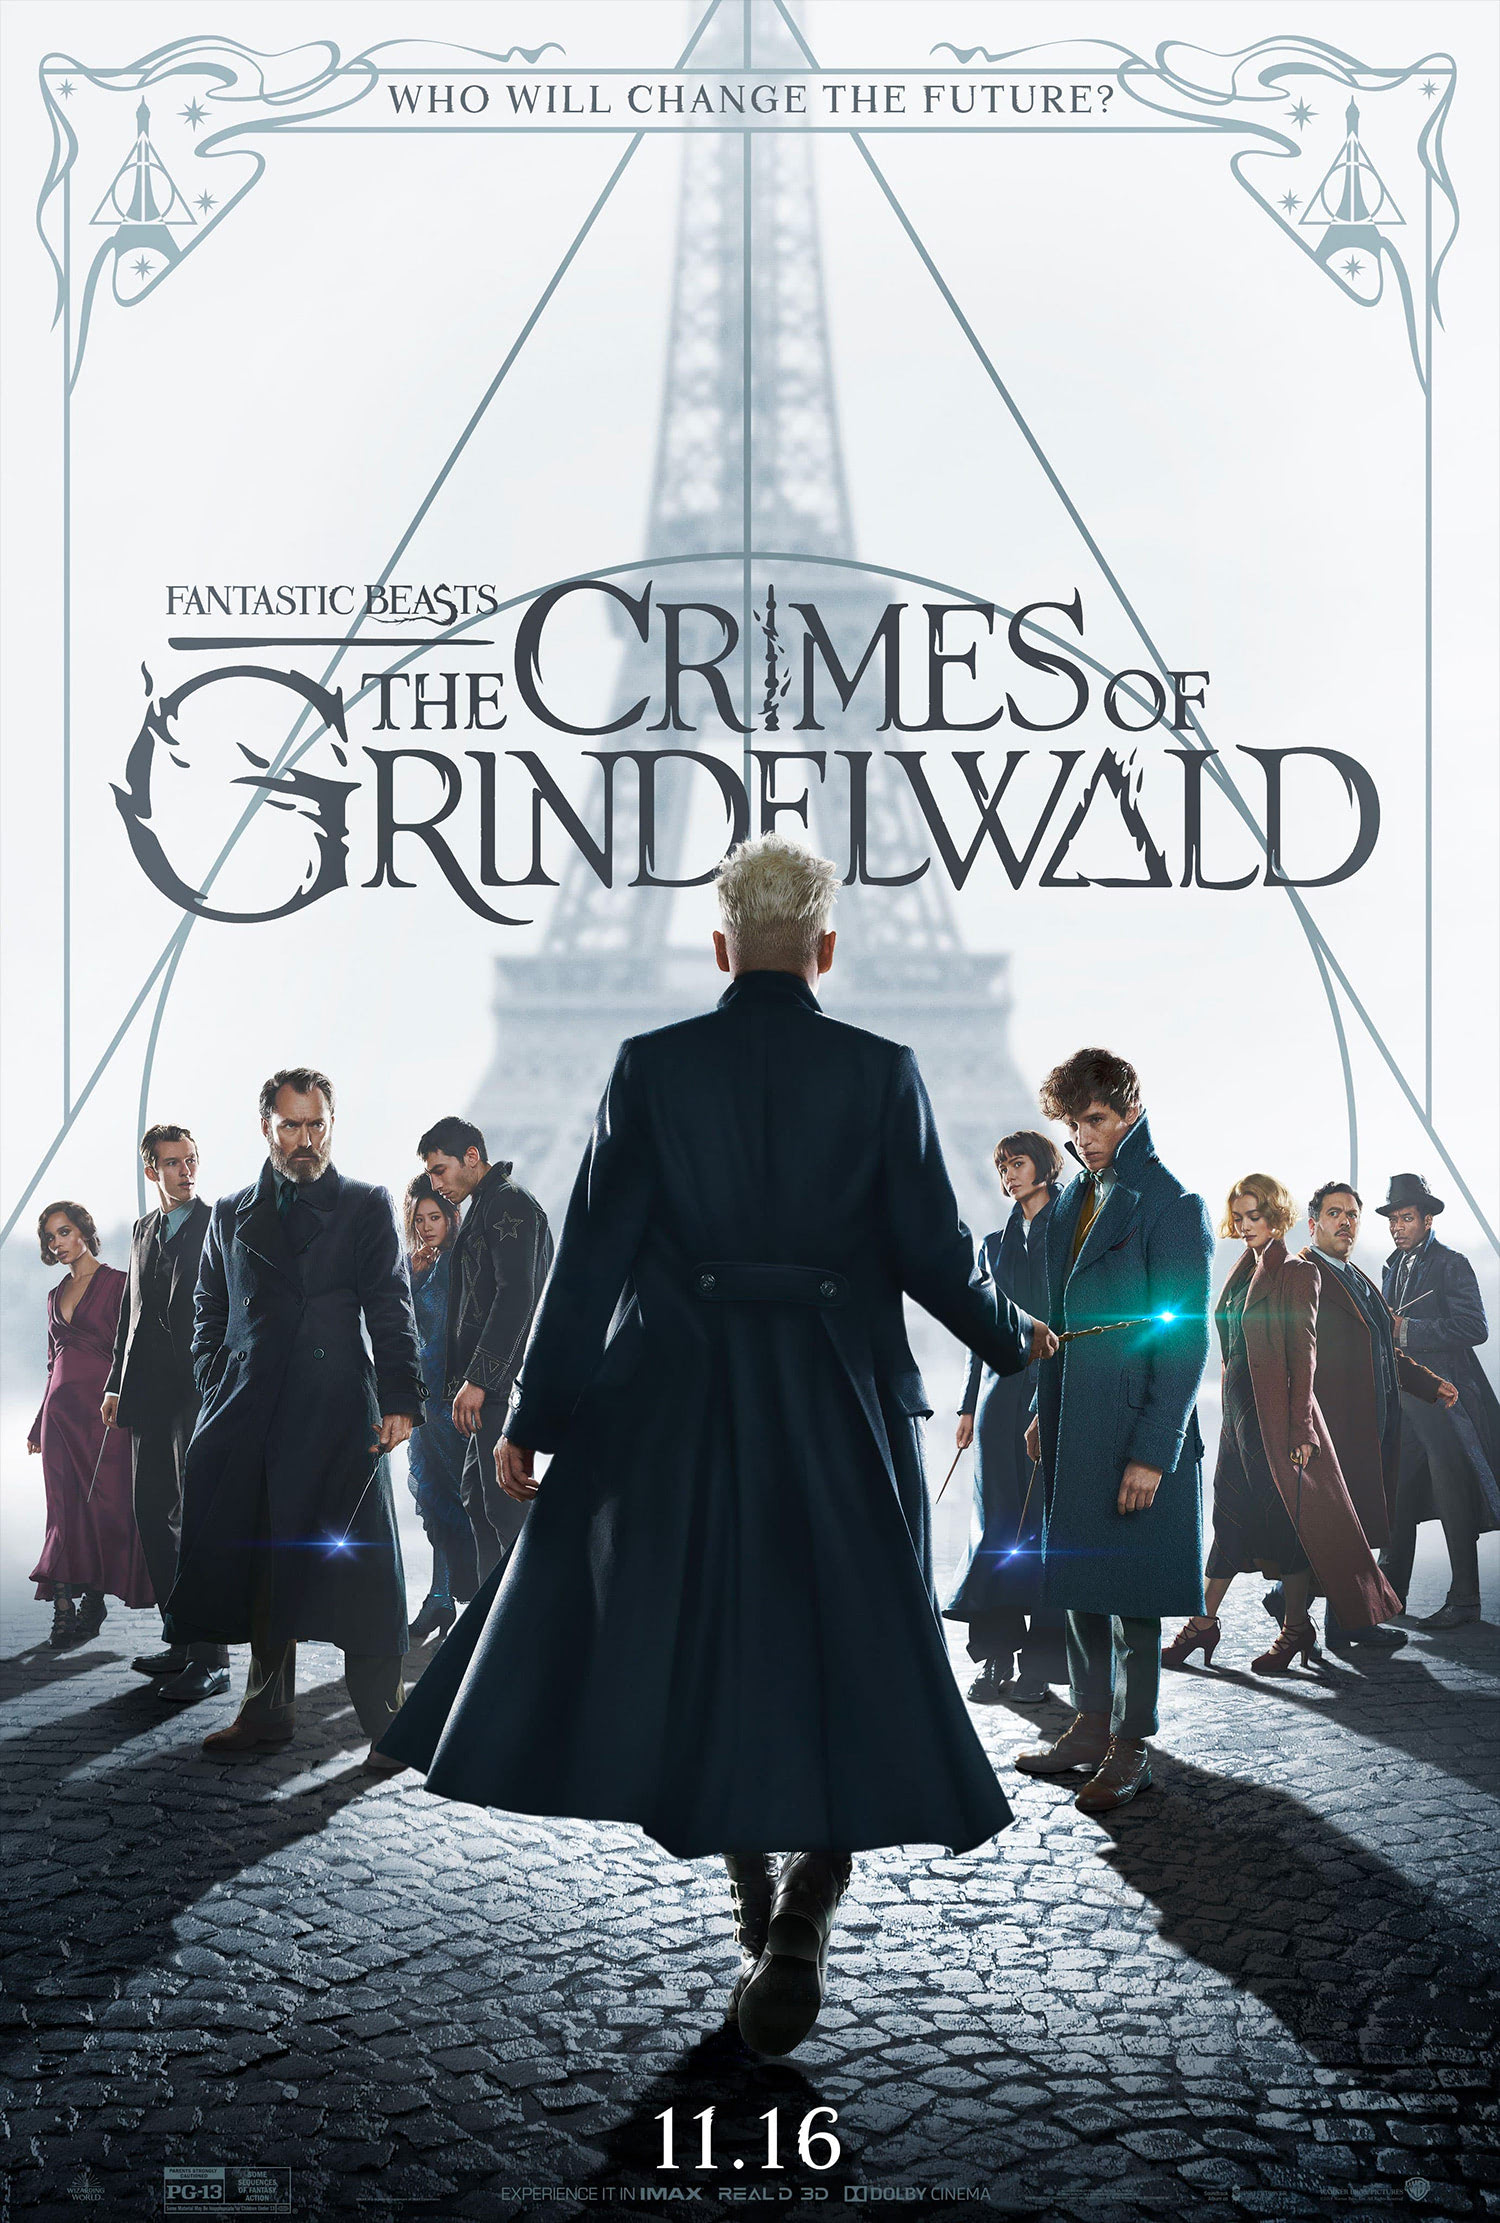 'Crimes of Grindelwald' poster